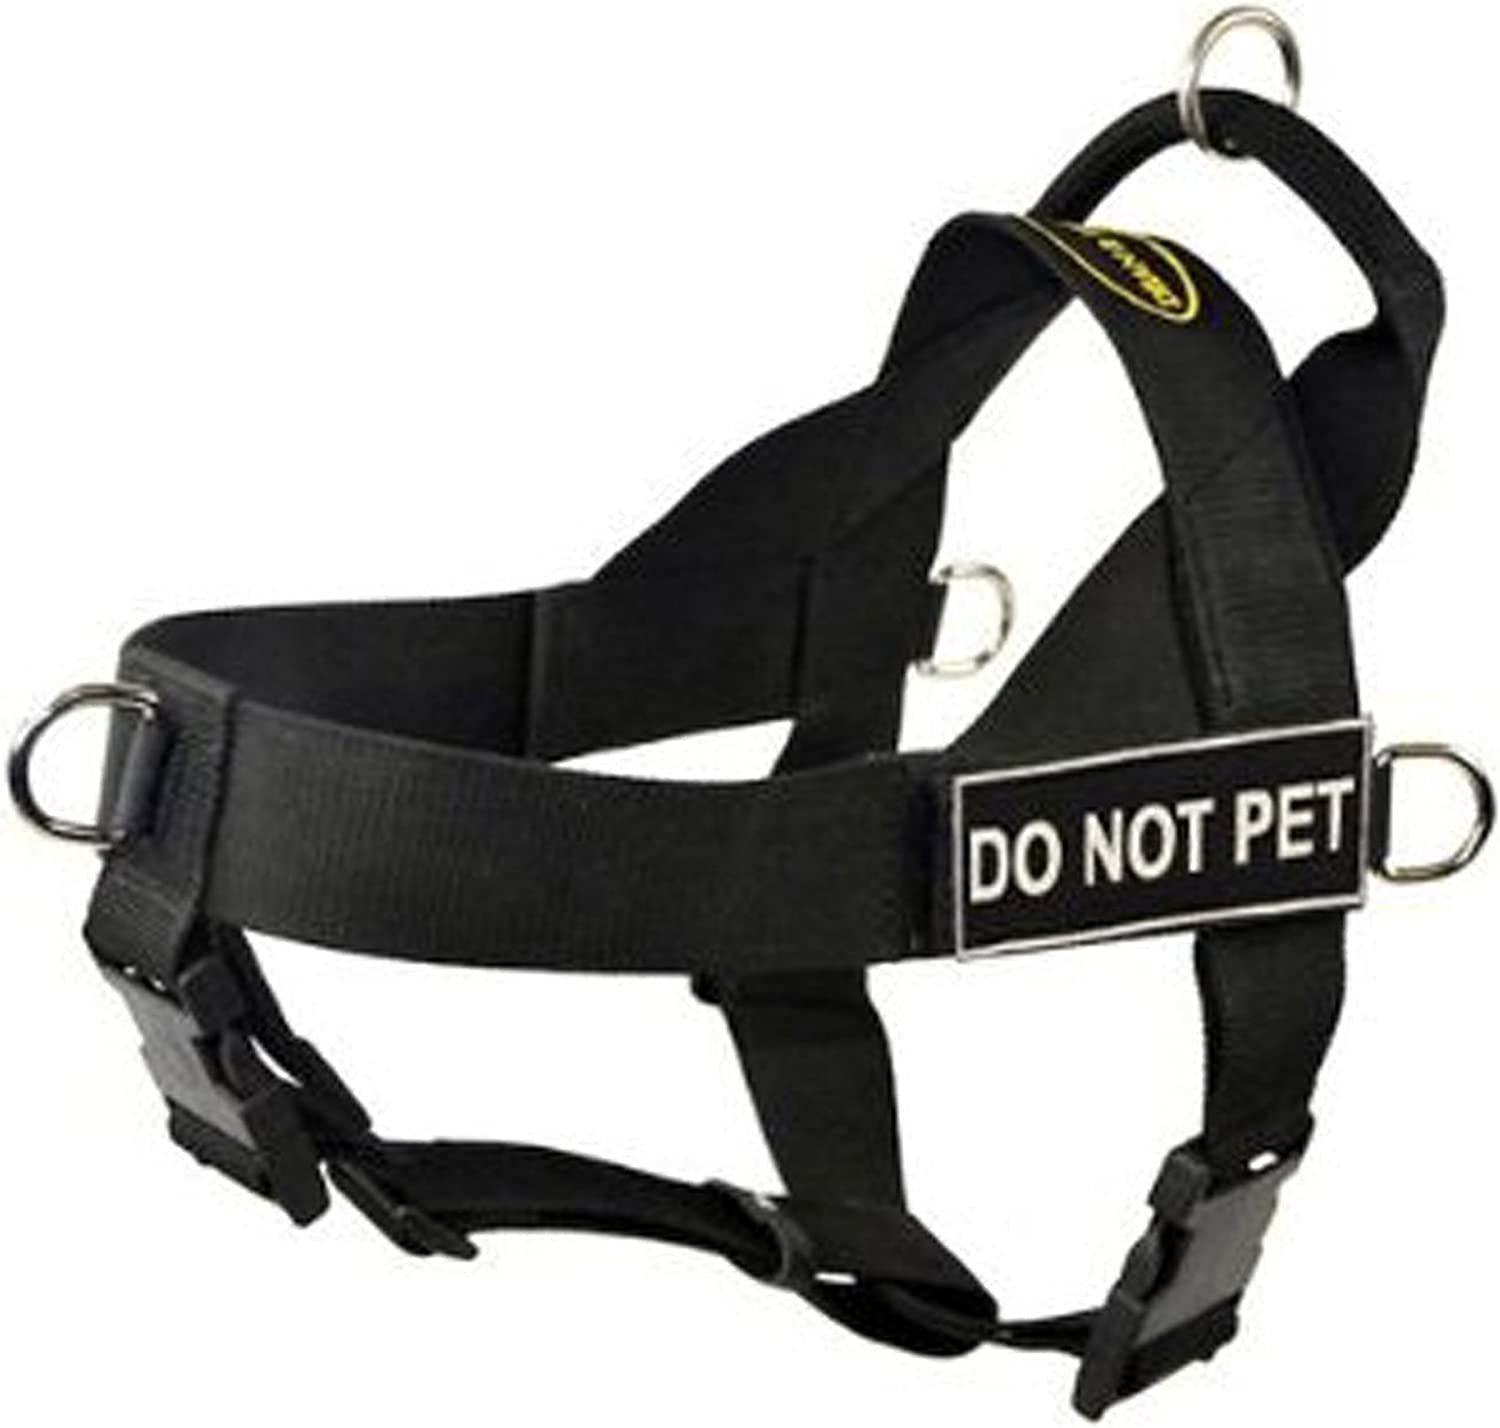 DT Universal No Pull Dog Harness, Do Not Pet, Black, XLarge  Fits Girth Size  91cm to 119cm